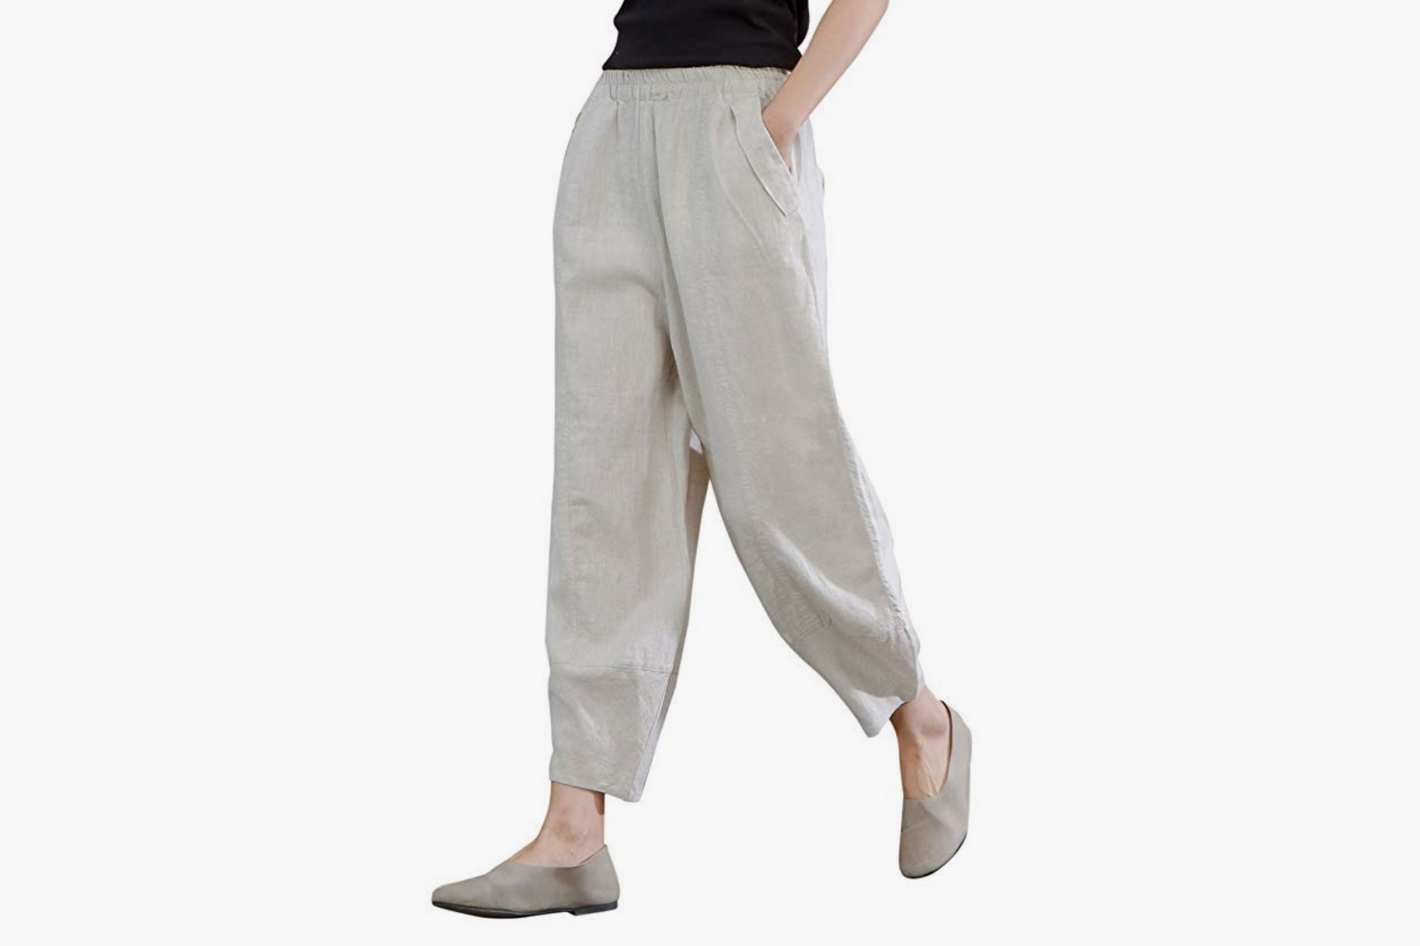 IXIMO Women's 100% Linen Pants Relax Fit Lantern Cropped Tapered Pants Trousers with Elastic Waist